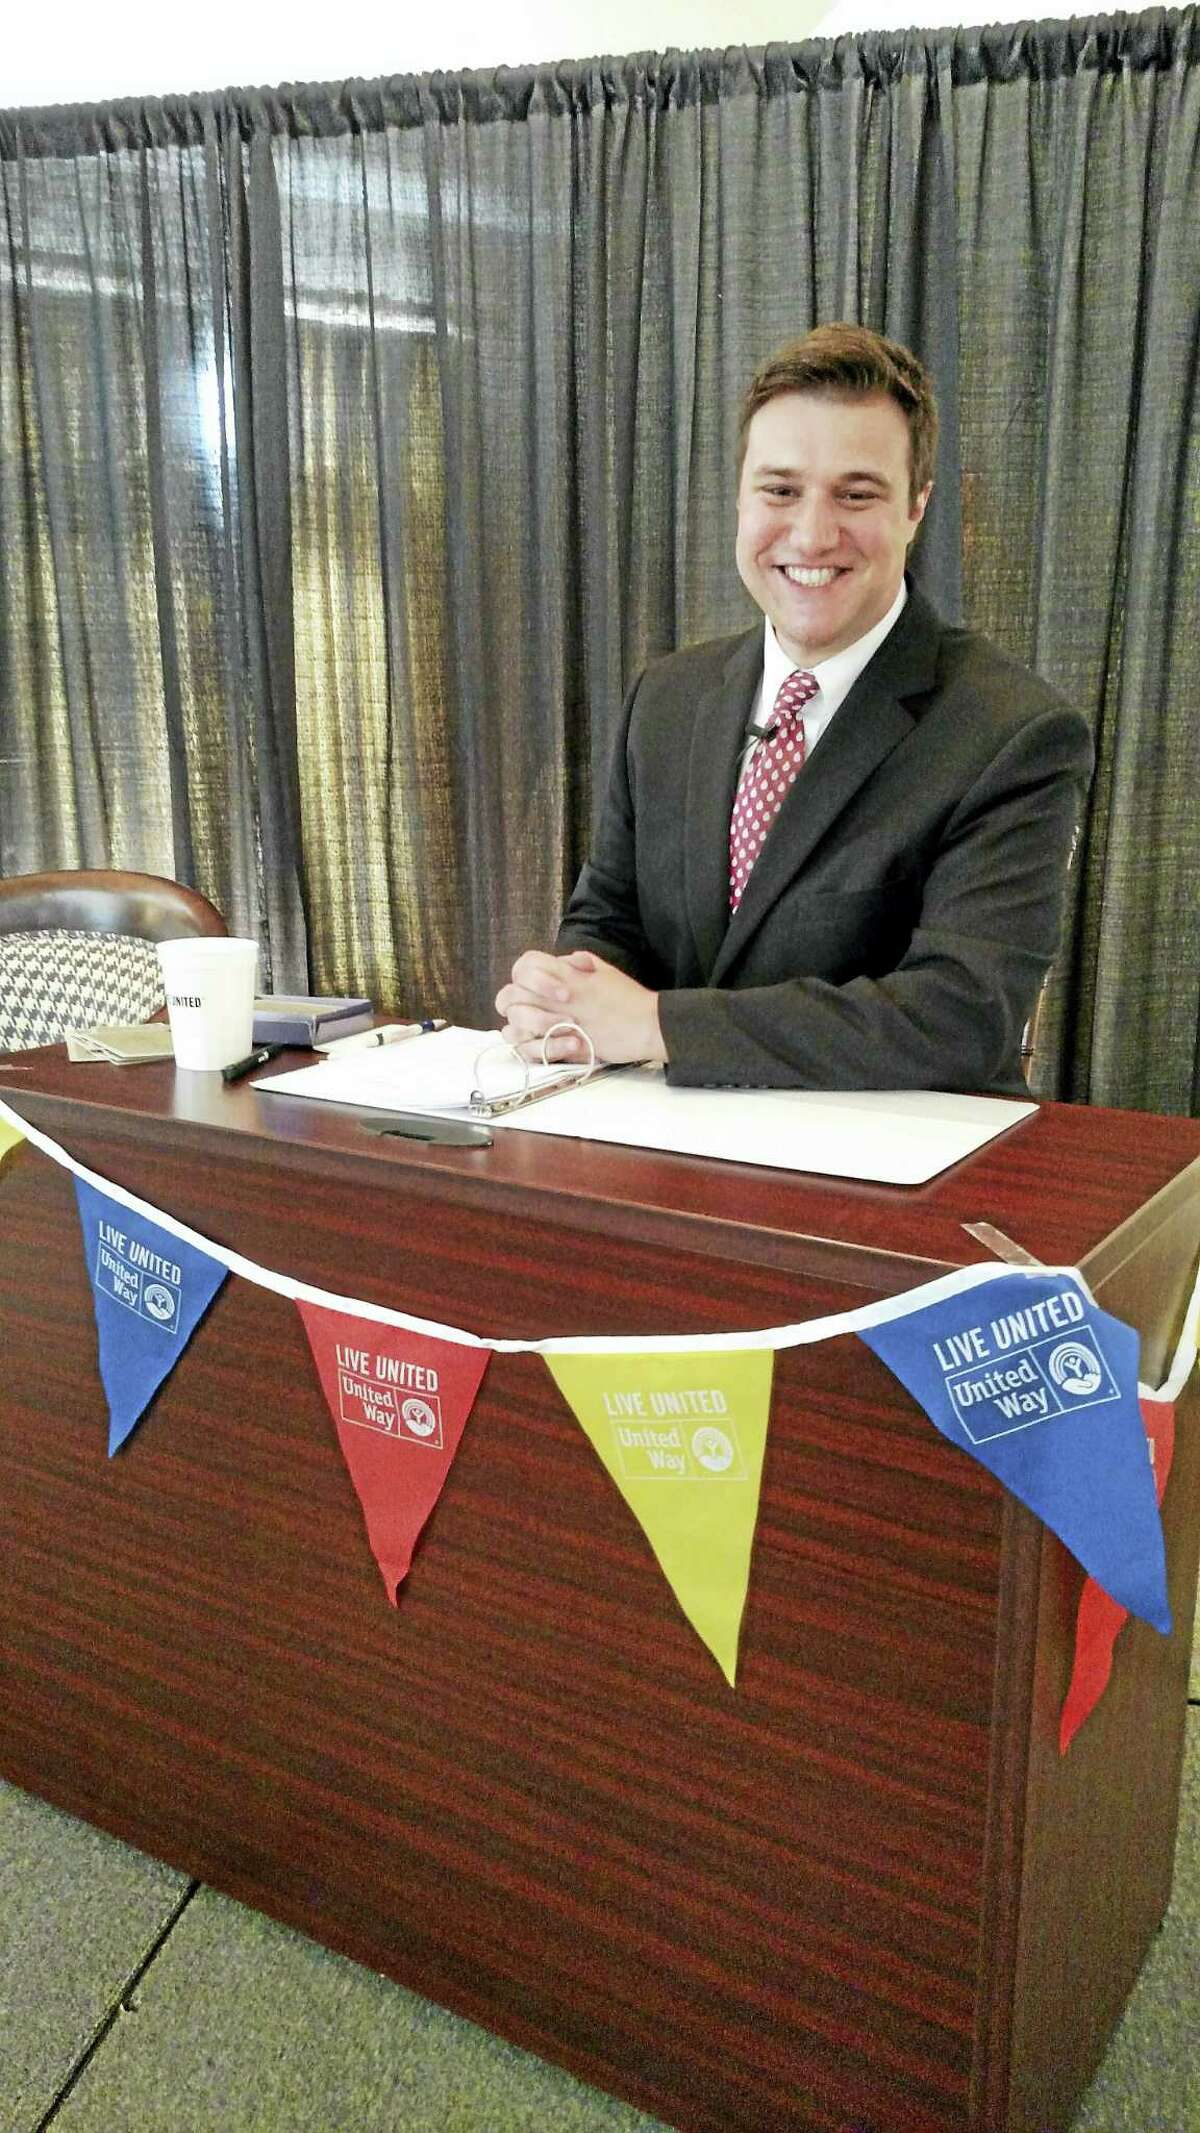 Last year's Middlesex United Way awards breakfast featured a late night talk show theme and emcee Josh Scheinblum from WTNH News 8. This year's event, a morning show emceed by Jamie Muro, will be held at the Elks Club, honoring more than 60 local companies and individuals.